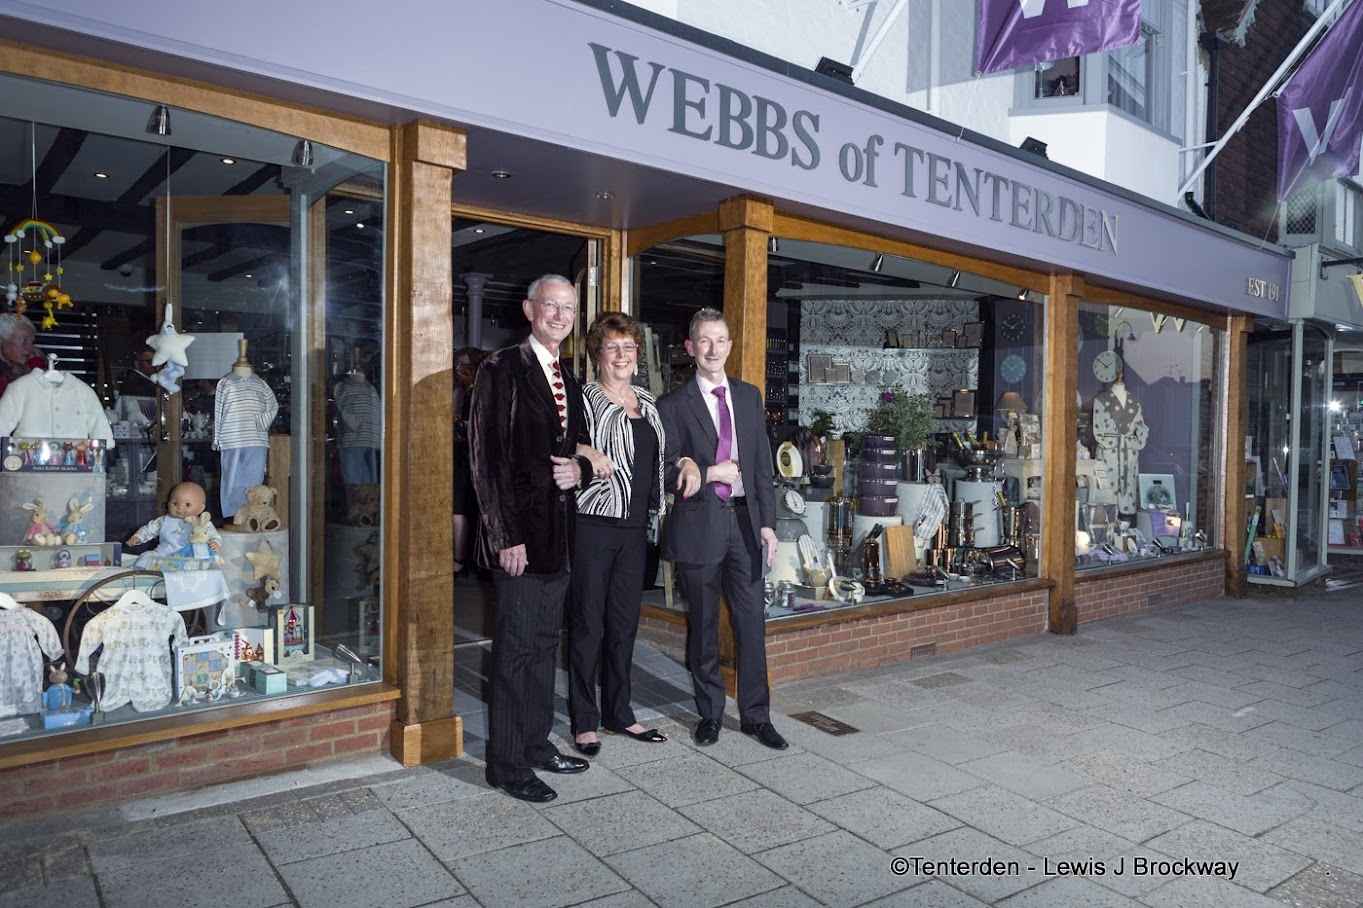 Webbs of Tenterden